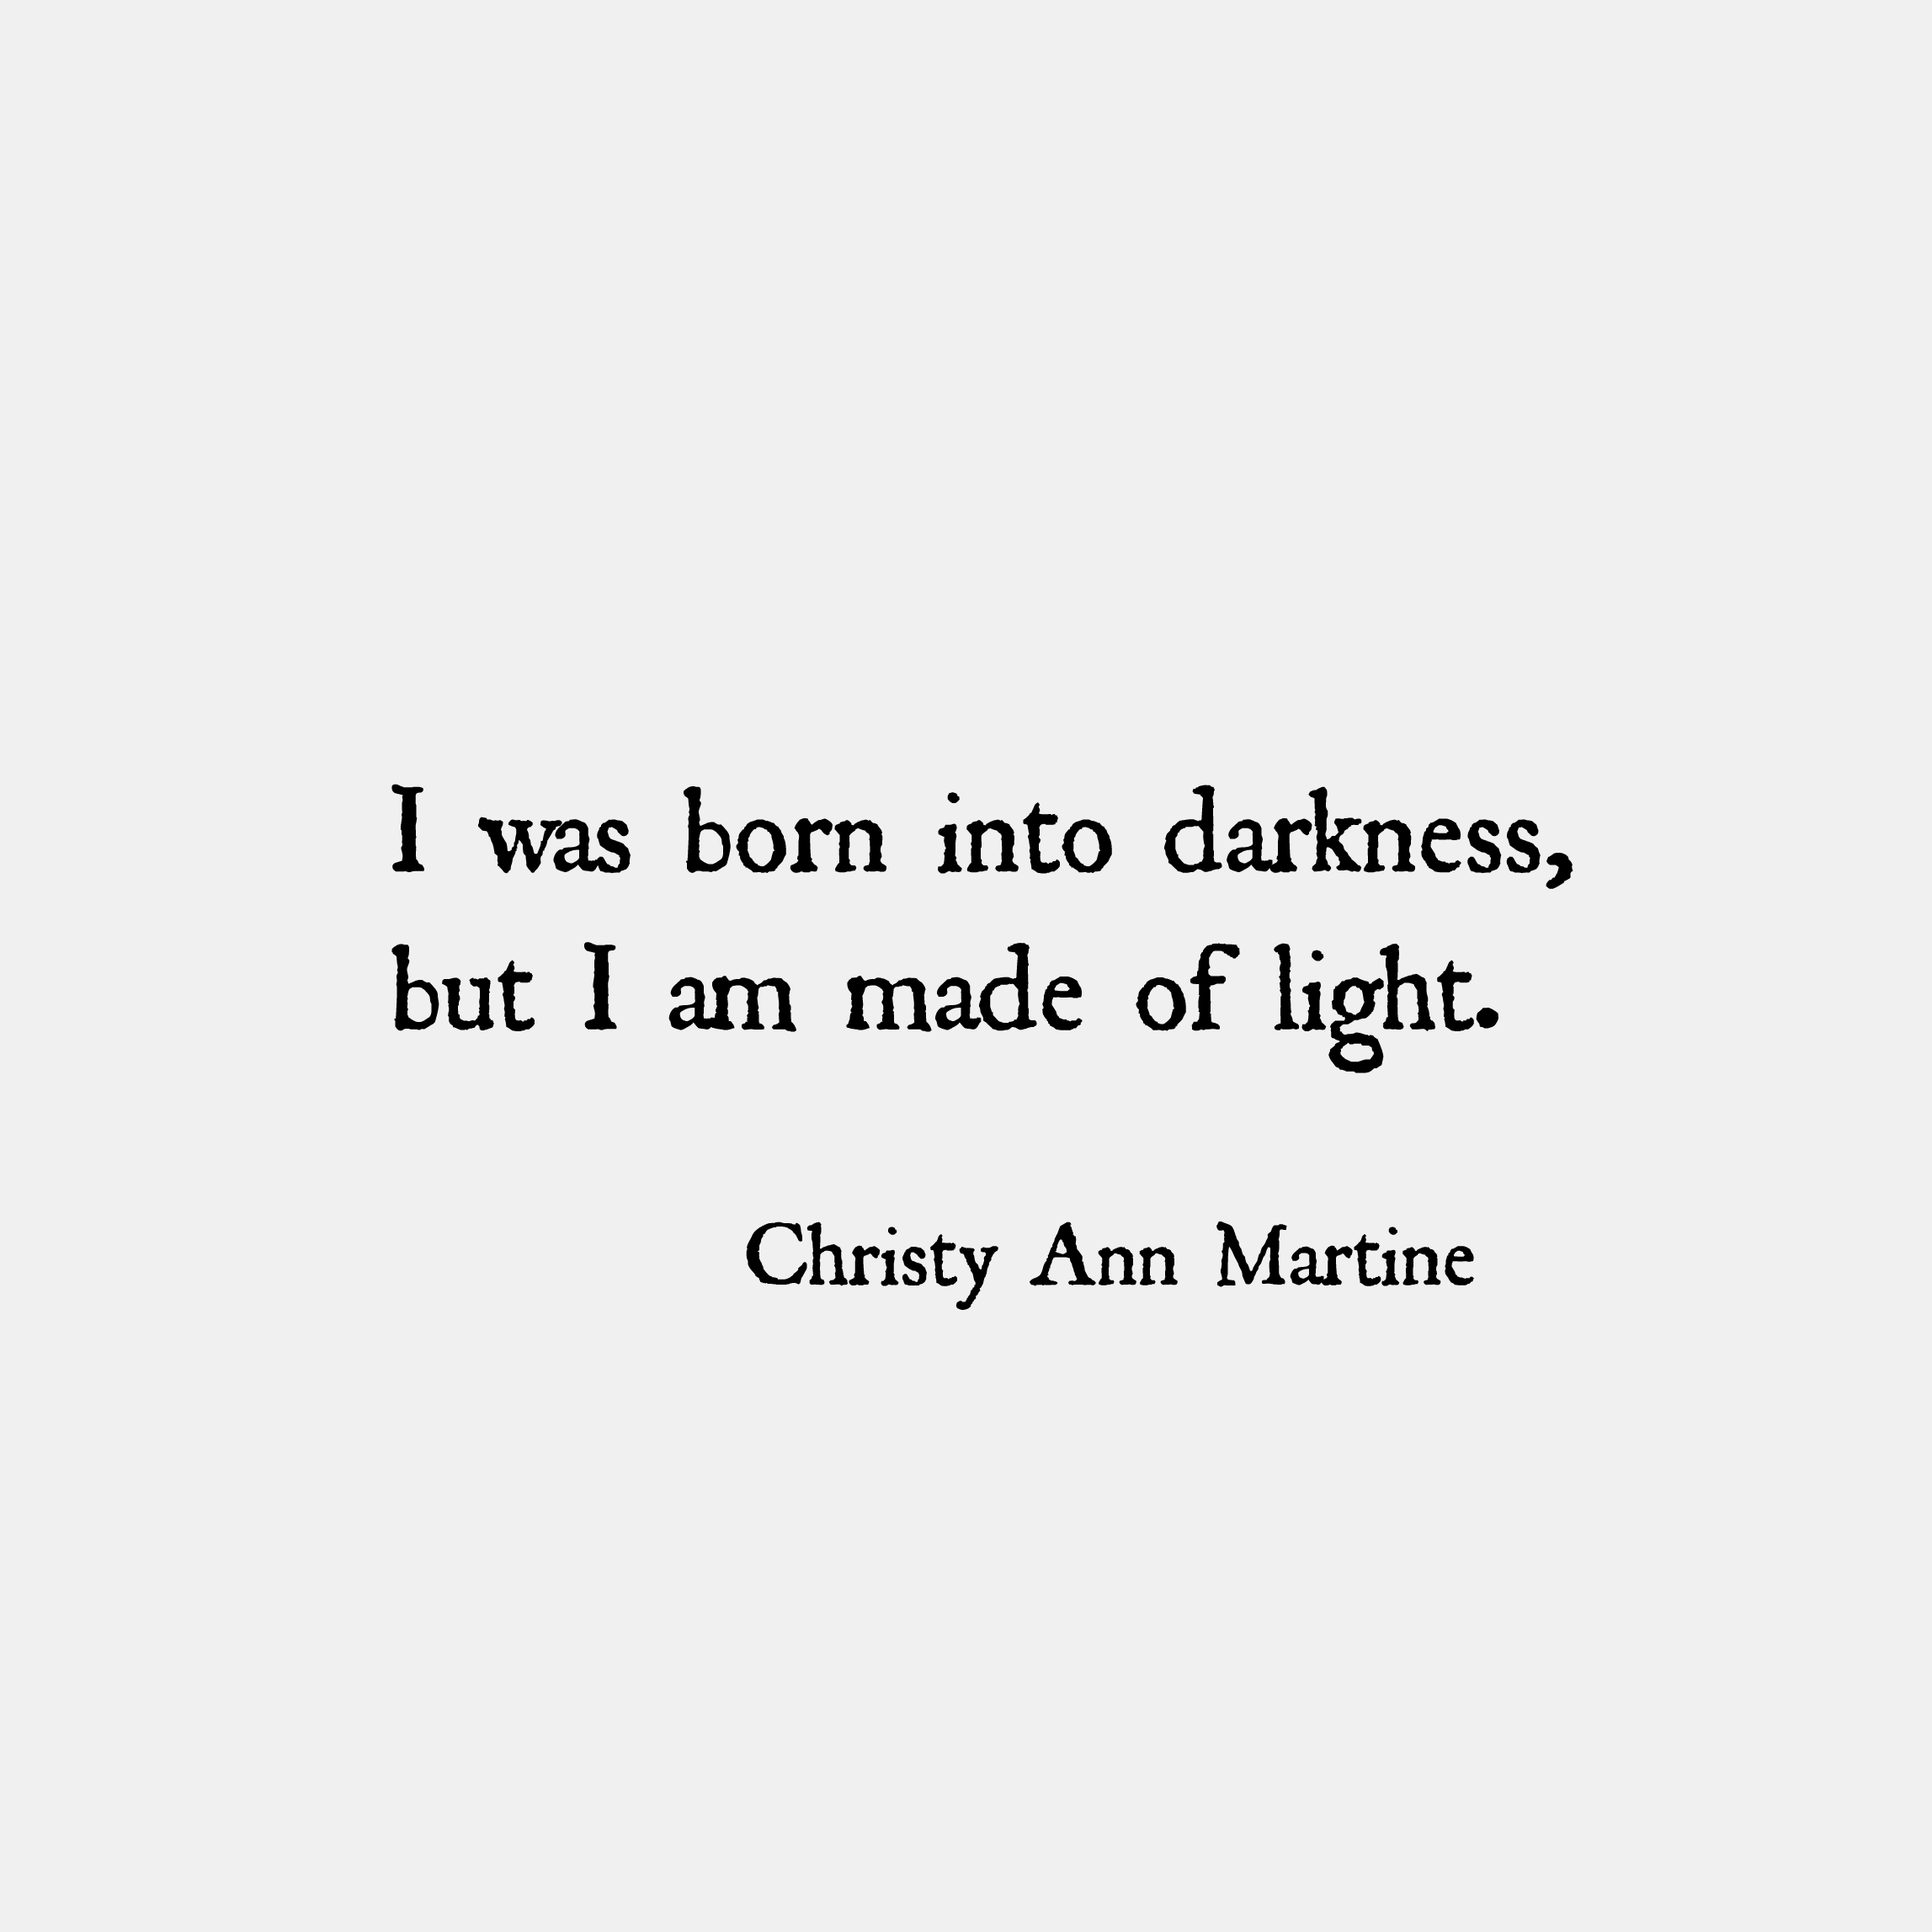 I was born into darkness, but I am made of light ...